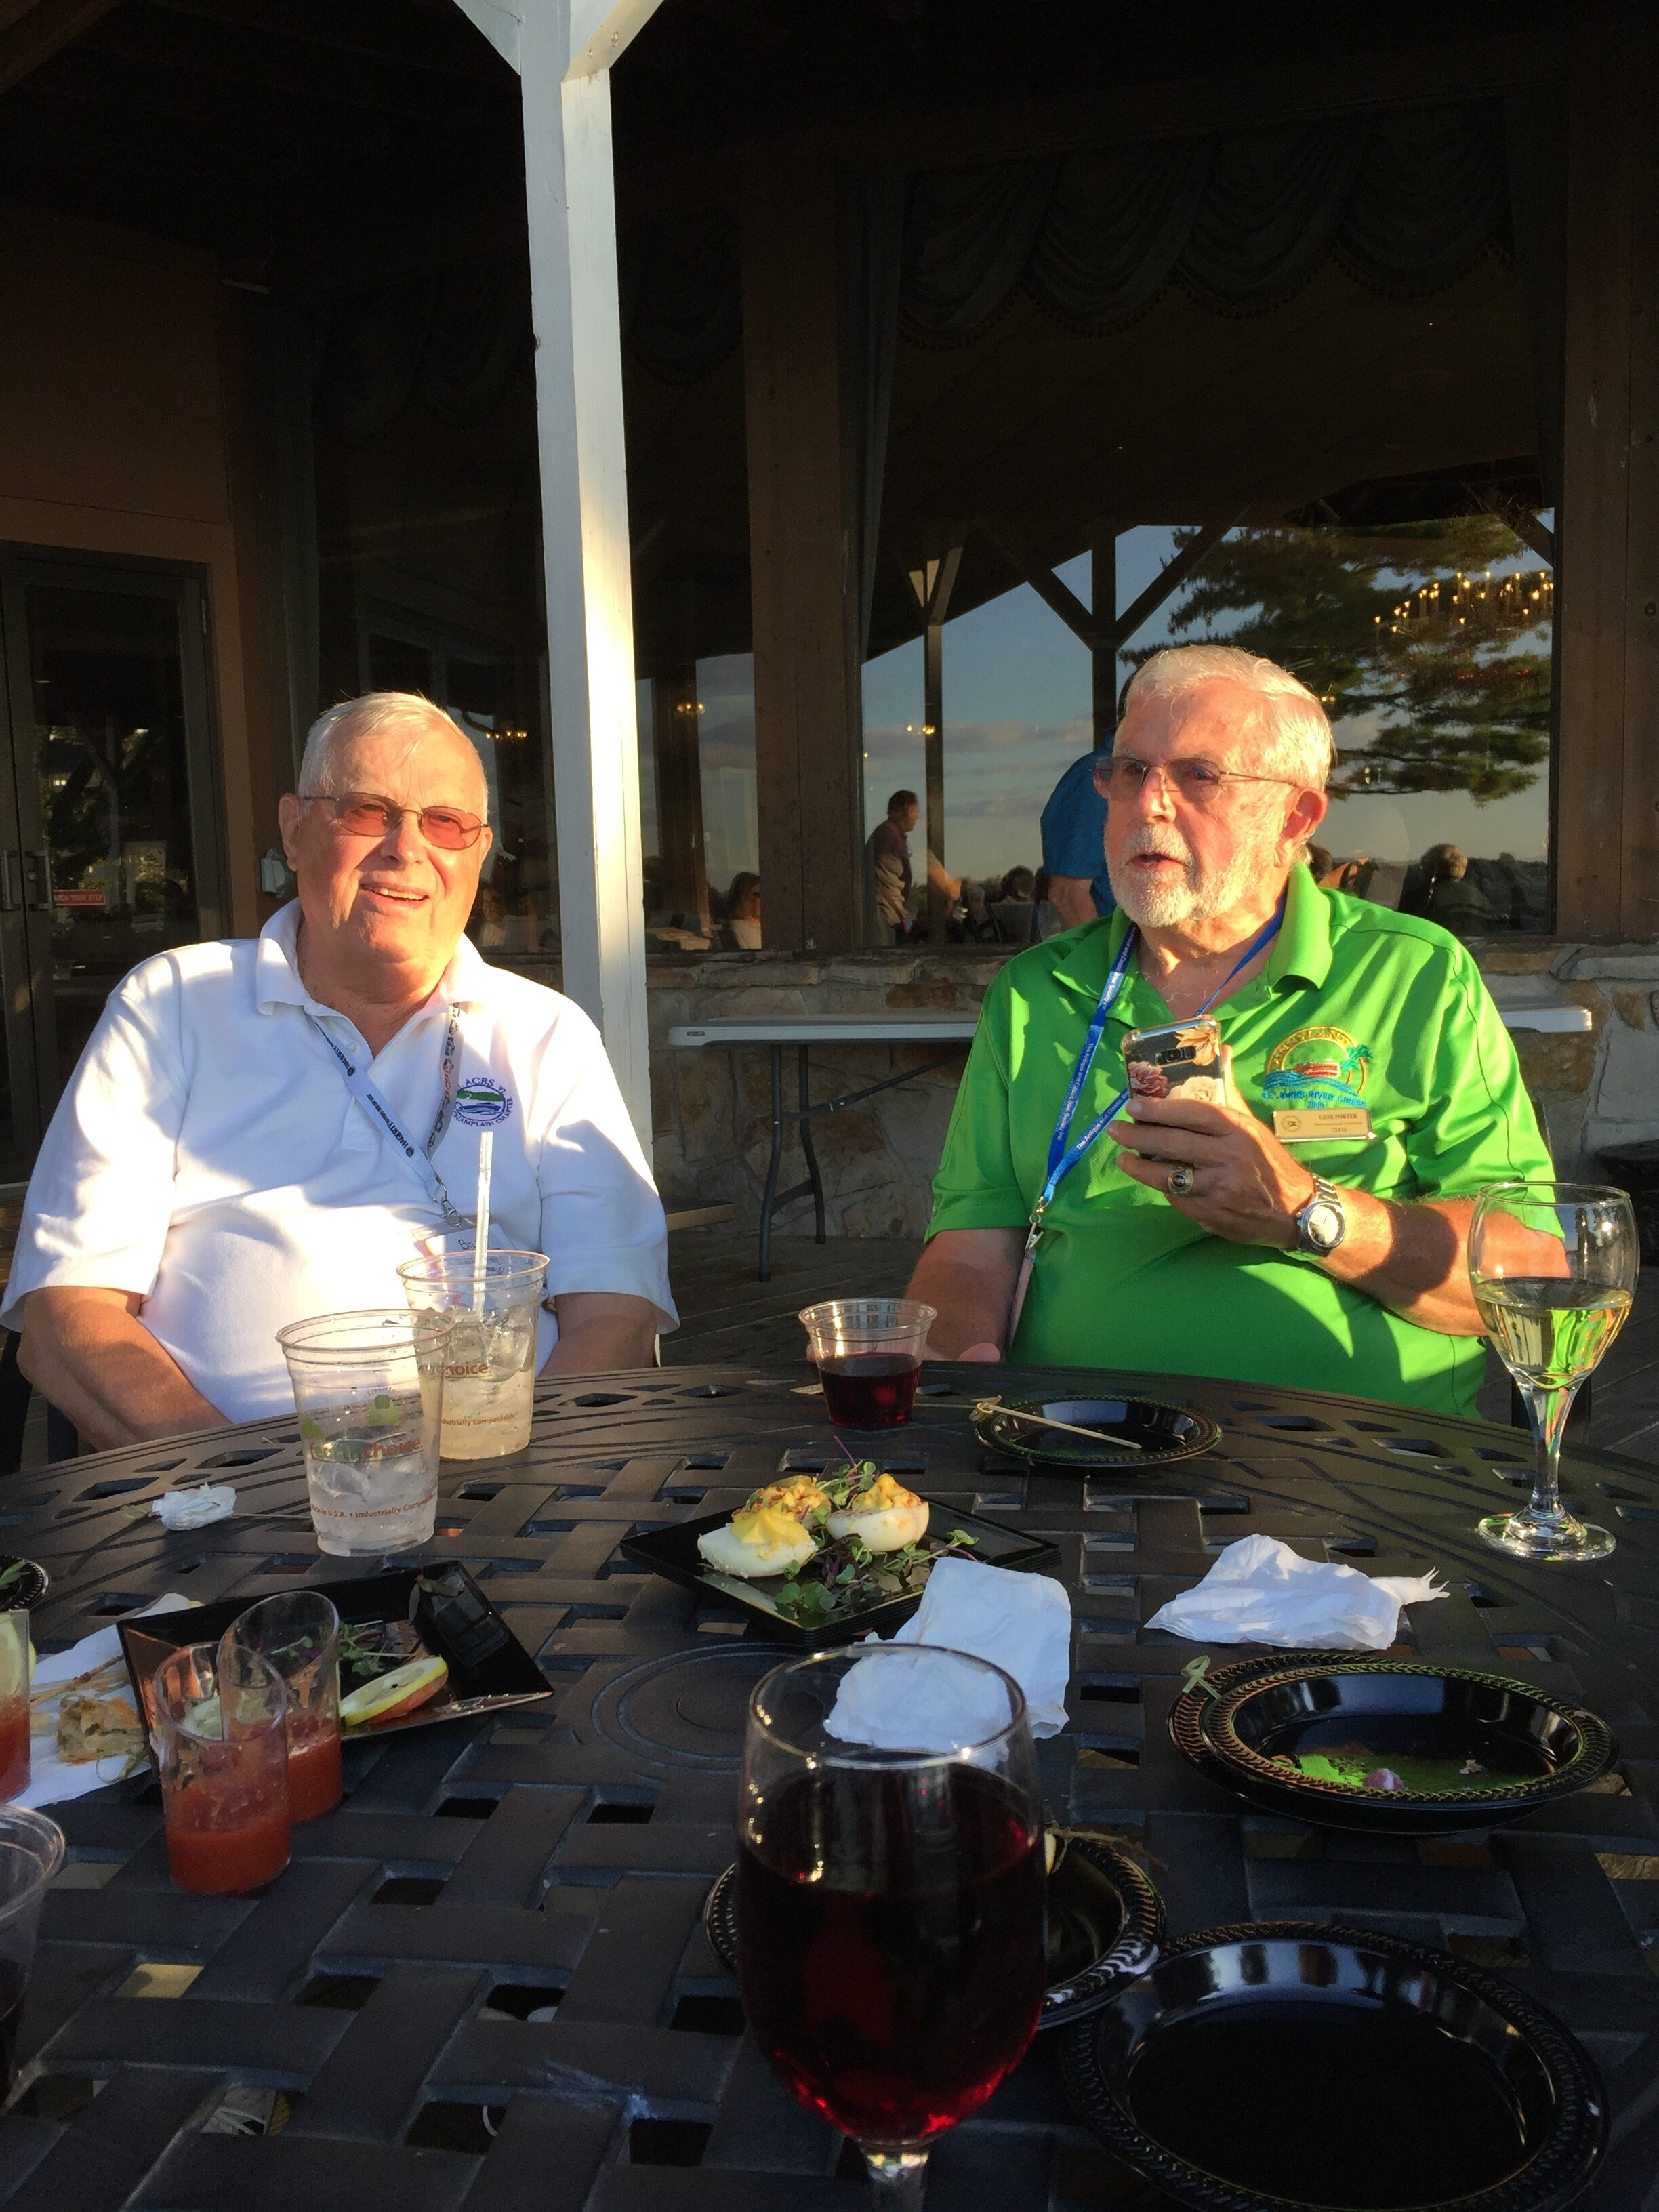 Gene and Bill at Tuesday afternoon's Welcome Reception at the Bonnie Castle